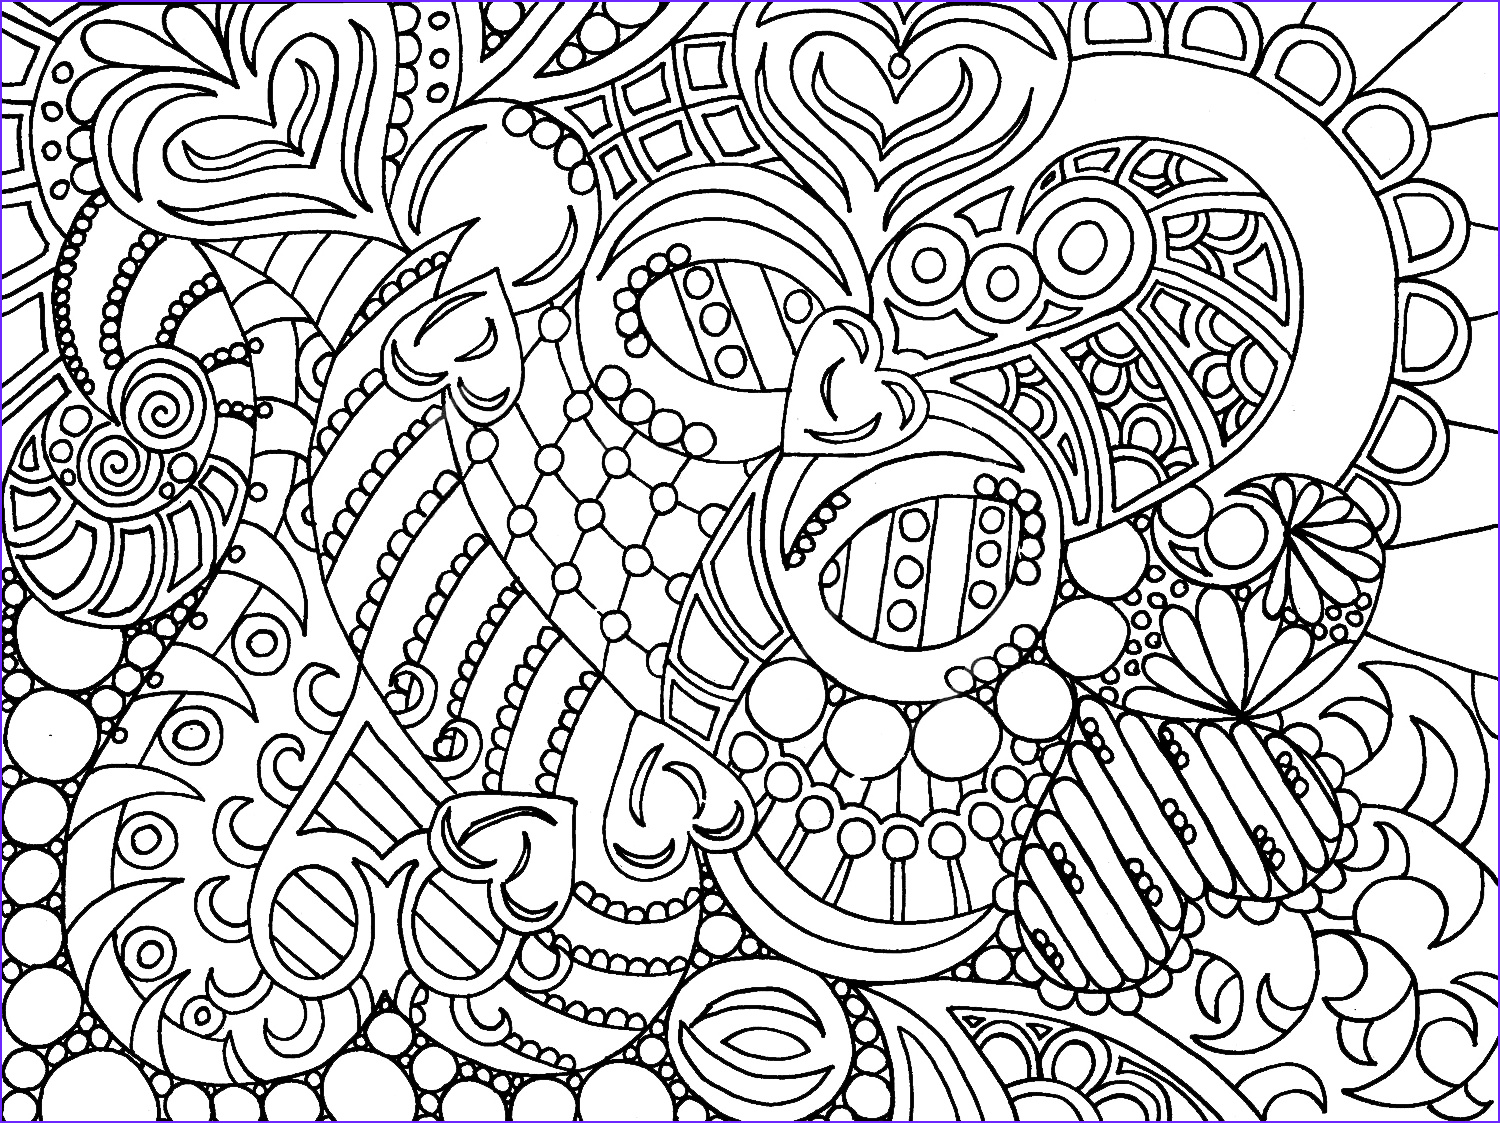 Adult Coloring Books Free Unique Gallery Free Coloring Pages for Adults